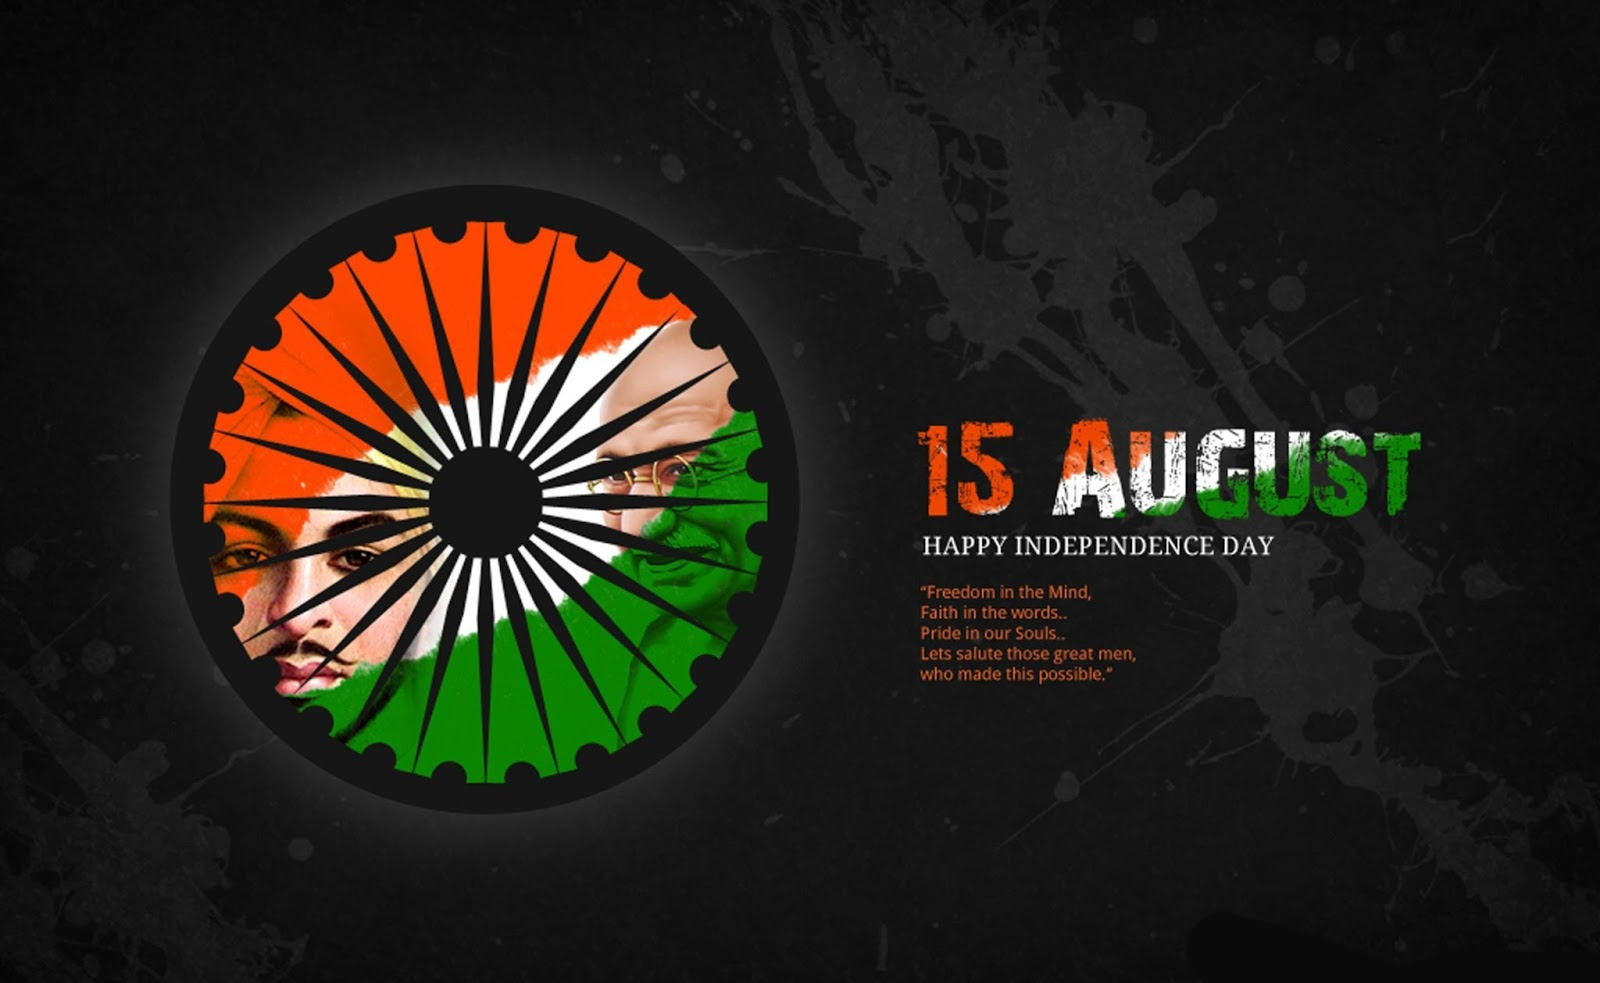 Independence Day HD Images & Wallpapers